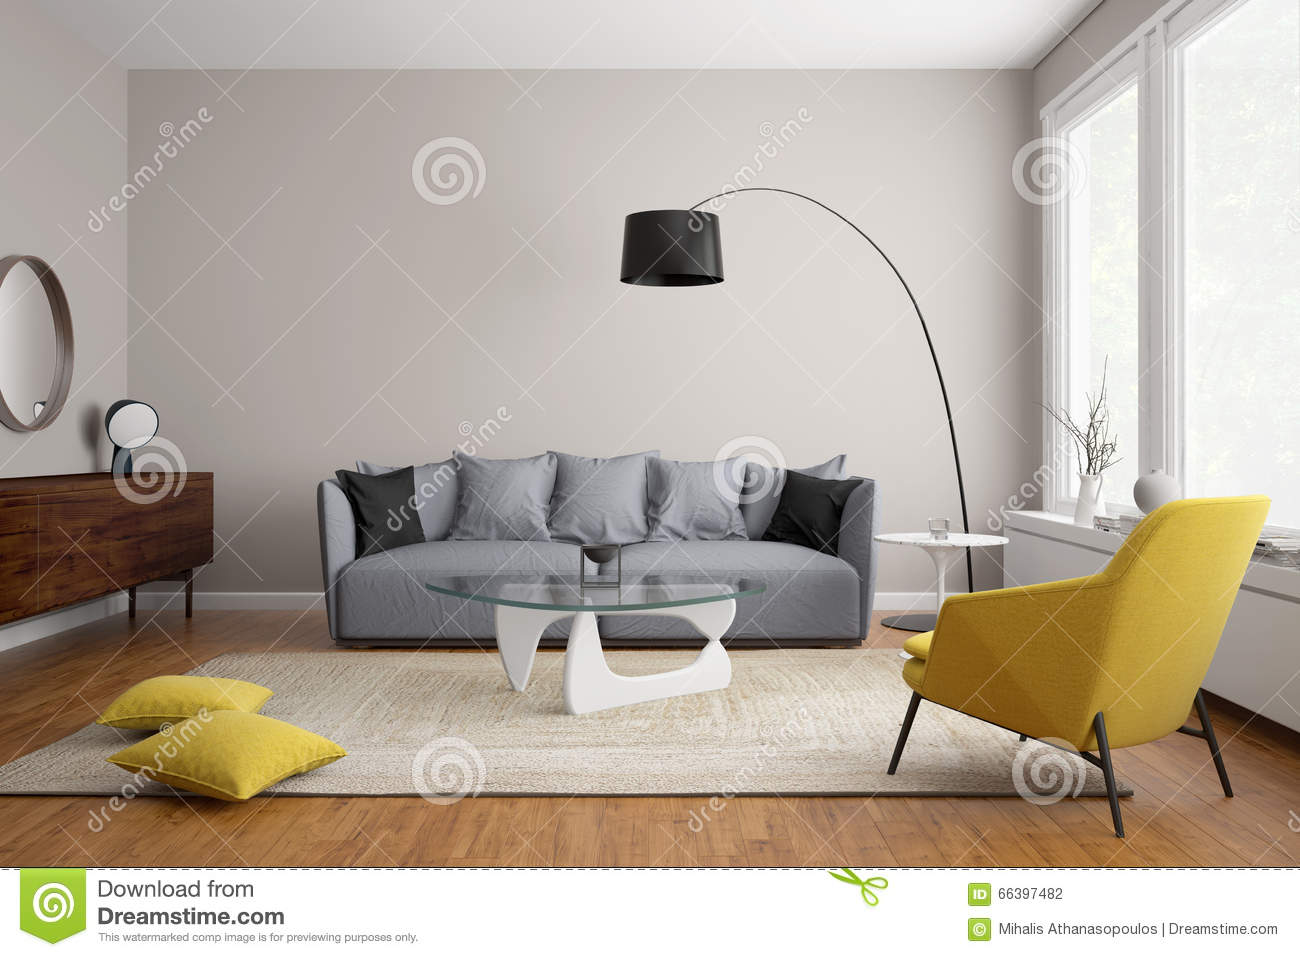 Salon Scandinave Moderne Avec Le Sofa Gris Illustration Stock ...